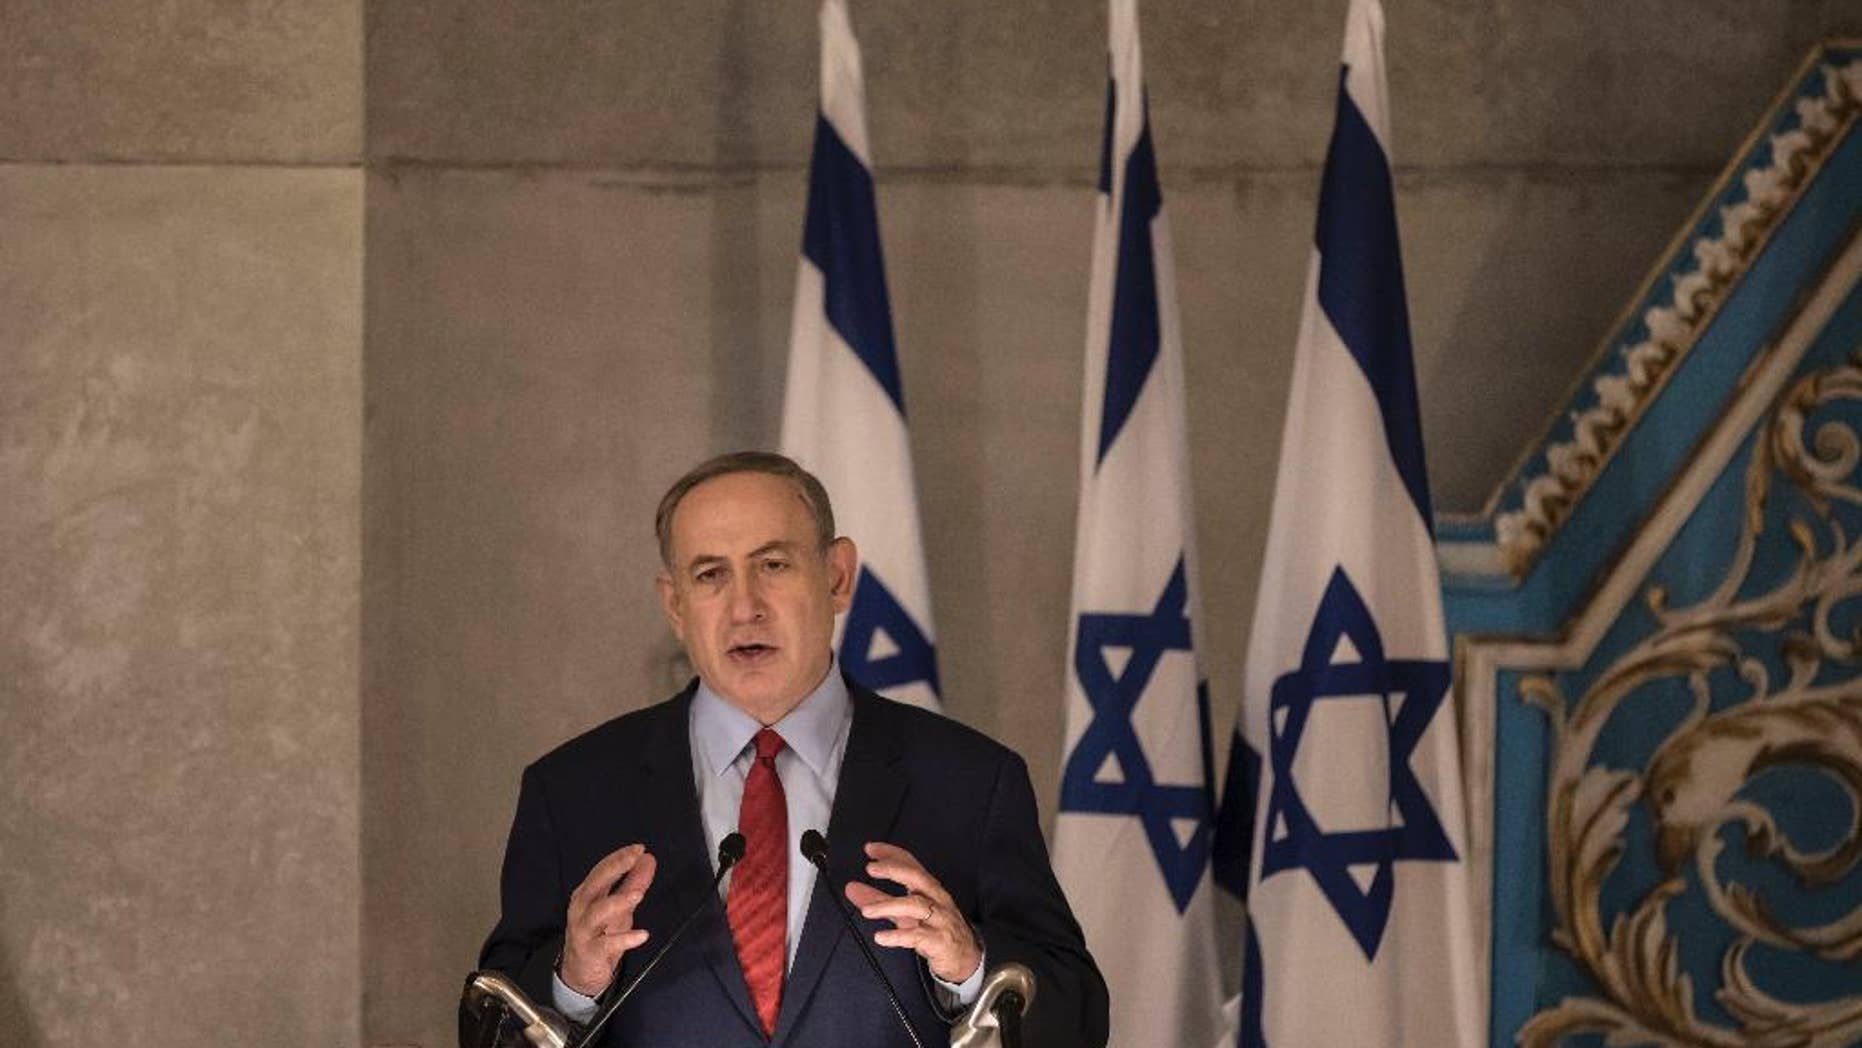 """Israeli Prime Minister Benjamin Netanyahu speaks in the synagogue at the Yad Vashem Holocaust Memorial Museum, in Jerusalem, Thursday, Jan. 26, 2017. In remarks at the Holocaust ceremony on Thursday, Netanyahu said President Donald Trump understands the """"danger"""" stemming from the Iran nuclear deal. (AP Photo/Tsafrir Abayov)"""